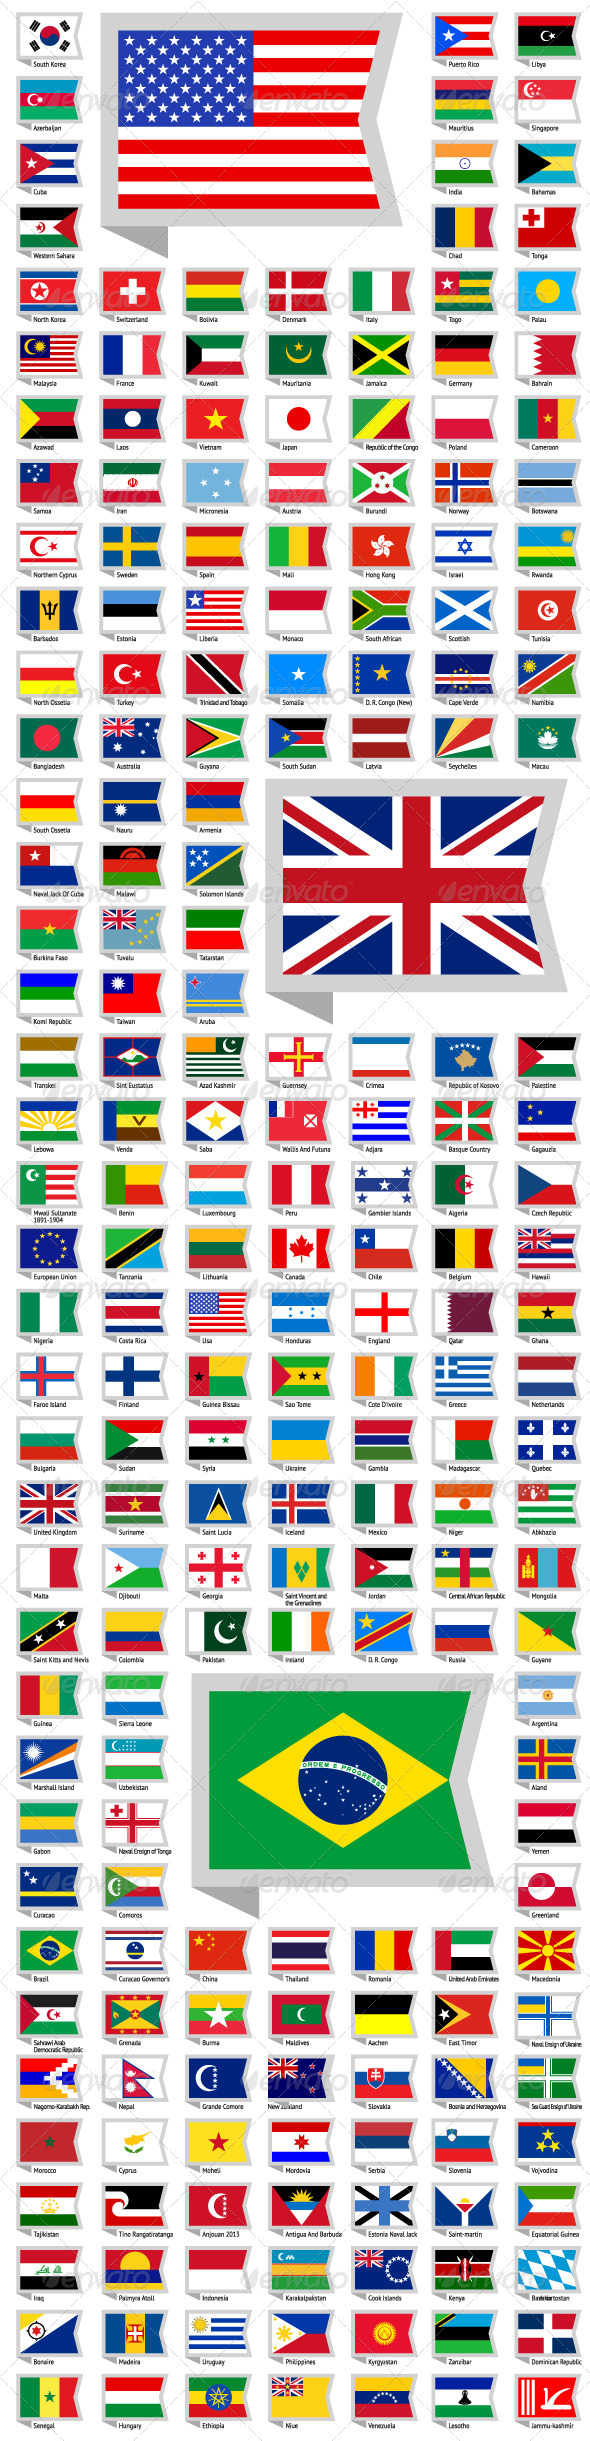 219 Flags of World